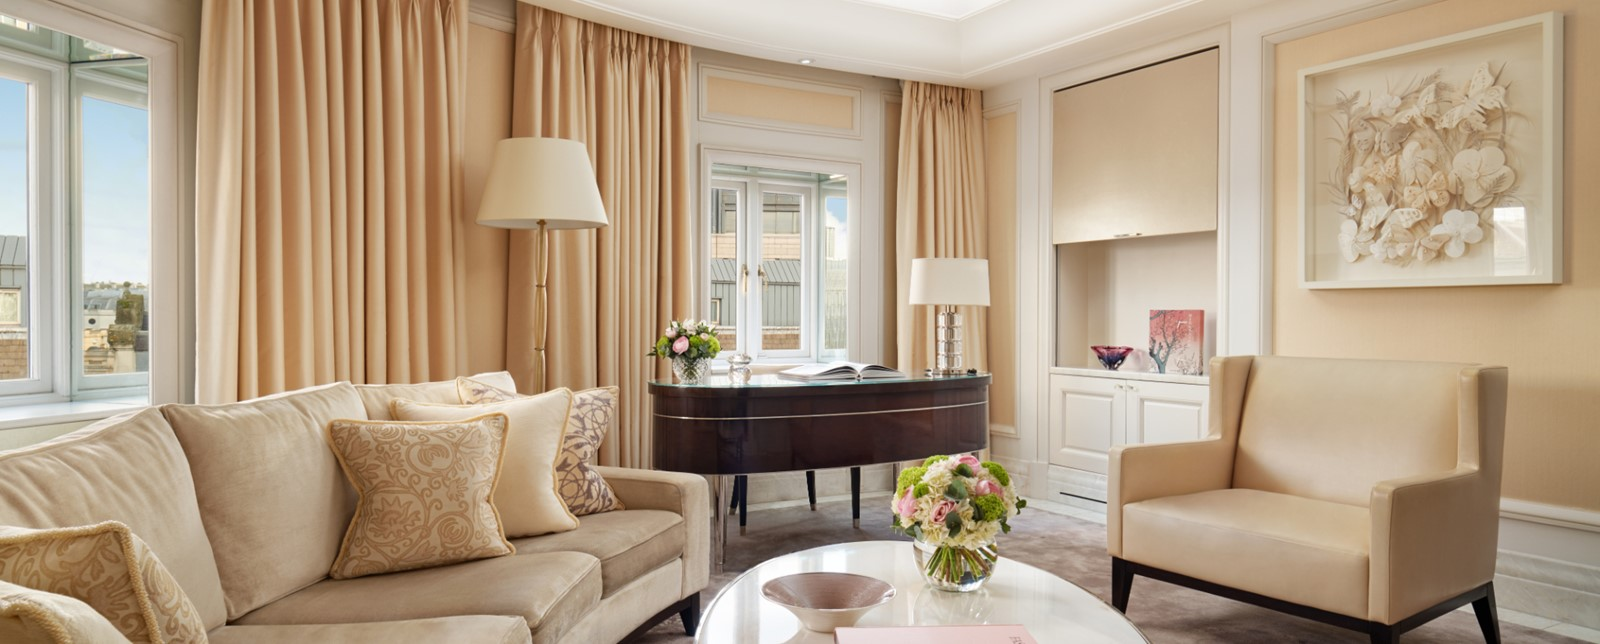 corinthia london hamilton penthouse